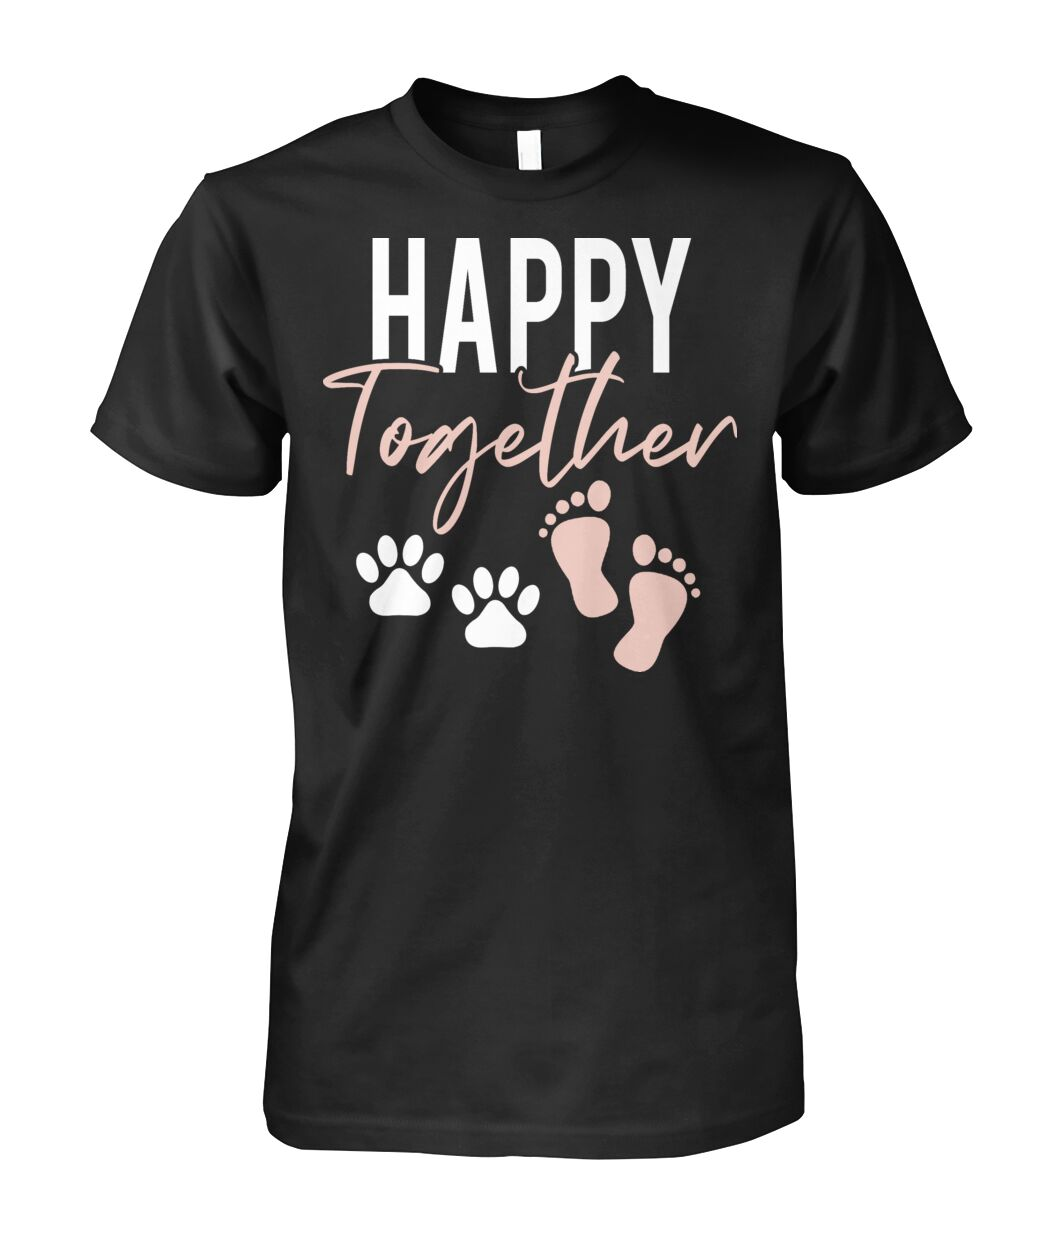 Happy Together - Paw & Foot Print